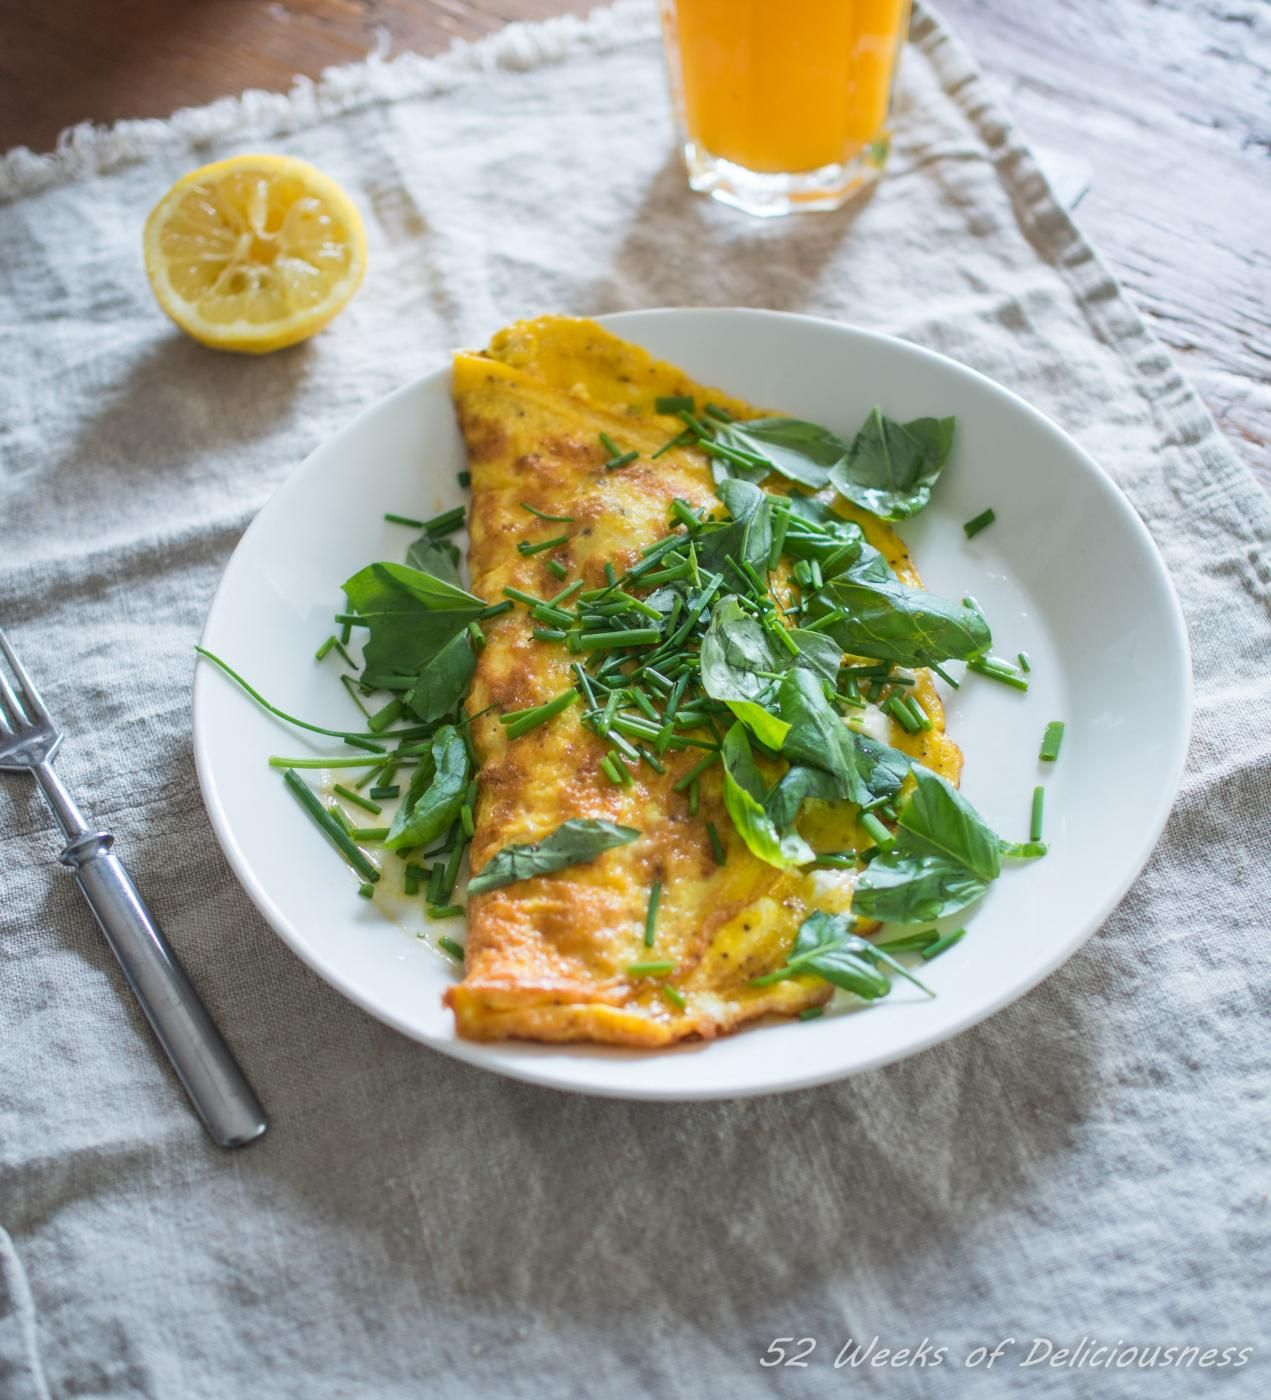 Breakfast Omelette with Feta and Herbs